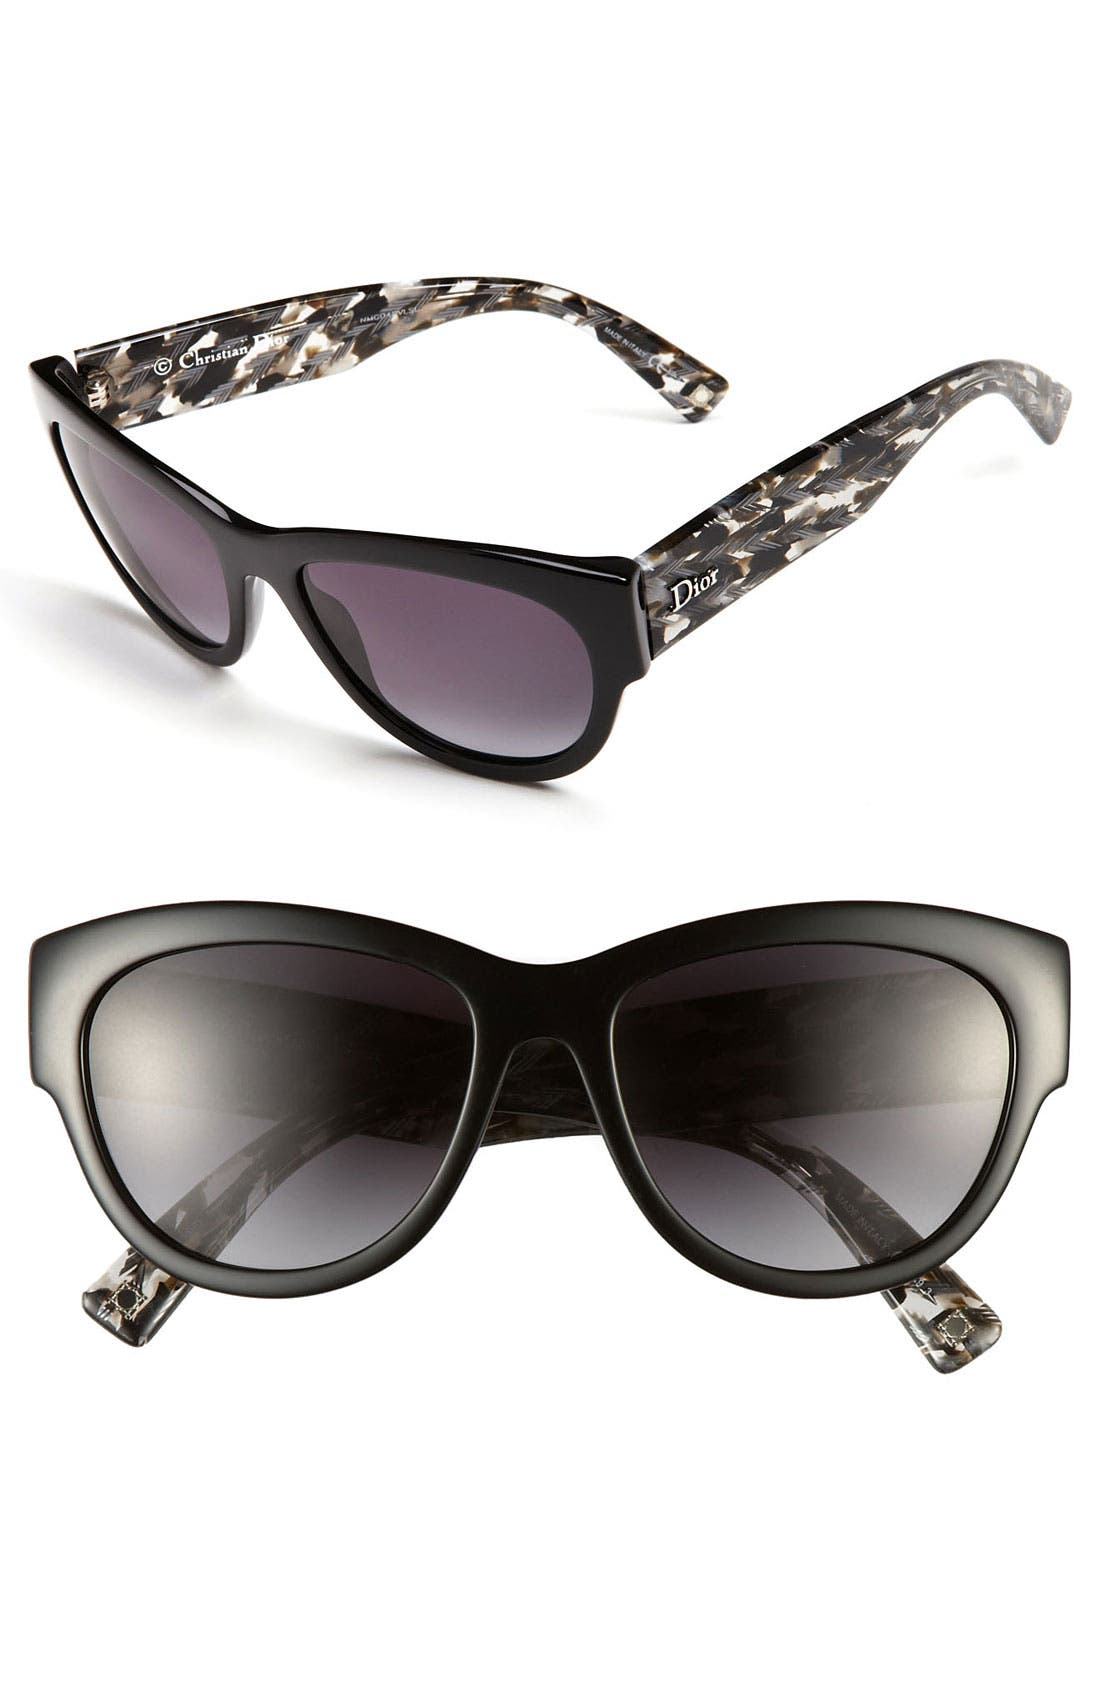 Main Image - Dior 'Flanelle' 56mm Sunglasses